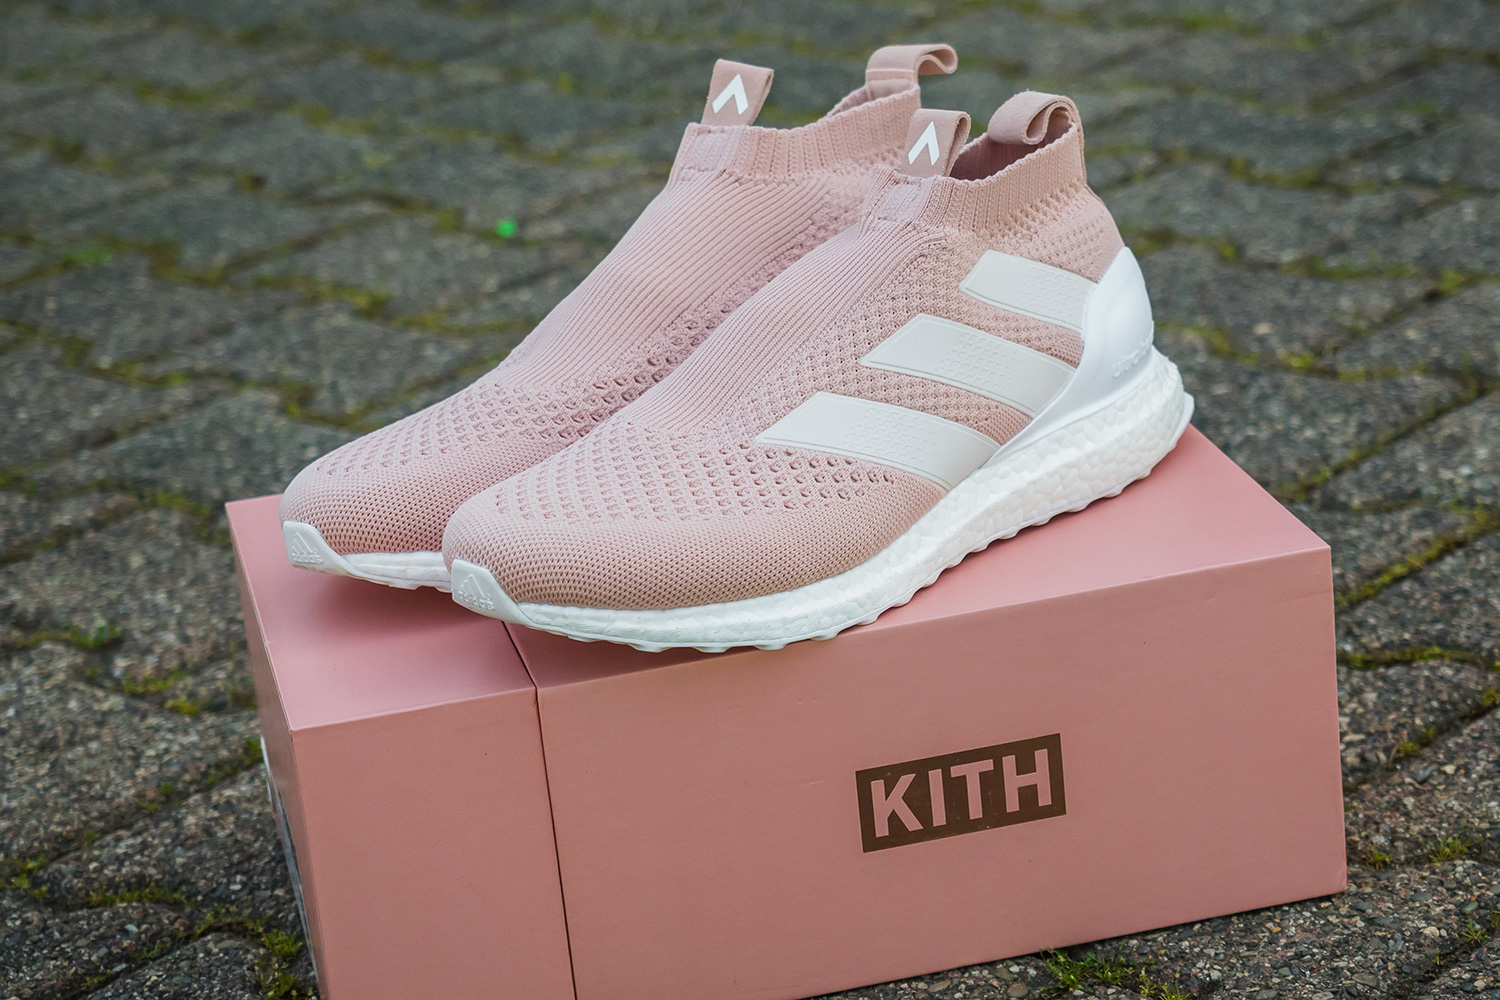 kith-adidas-ace-16-purecontrol-ultra-boost-01